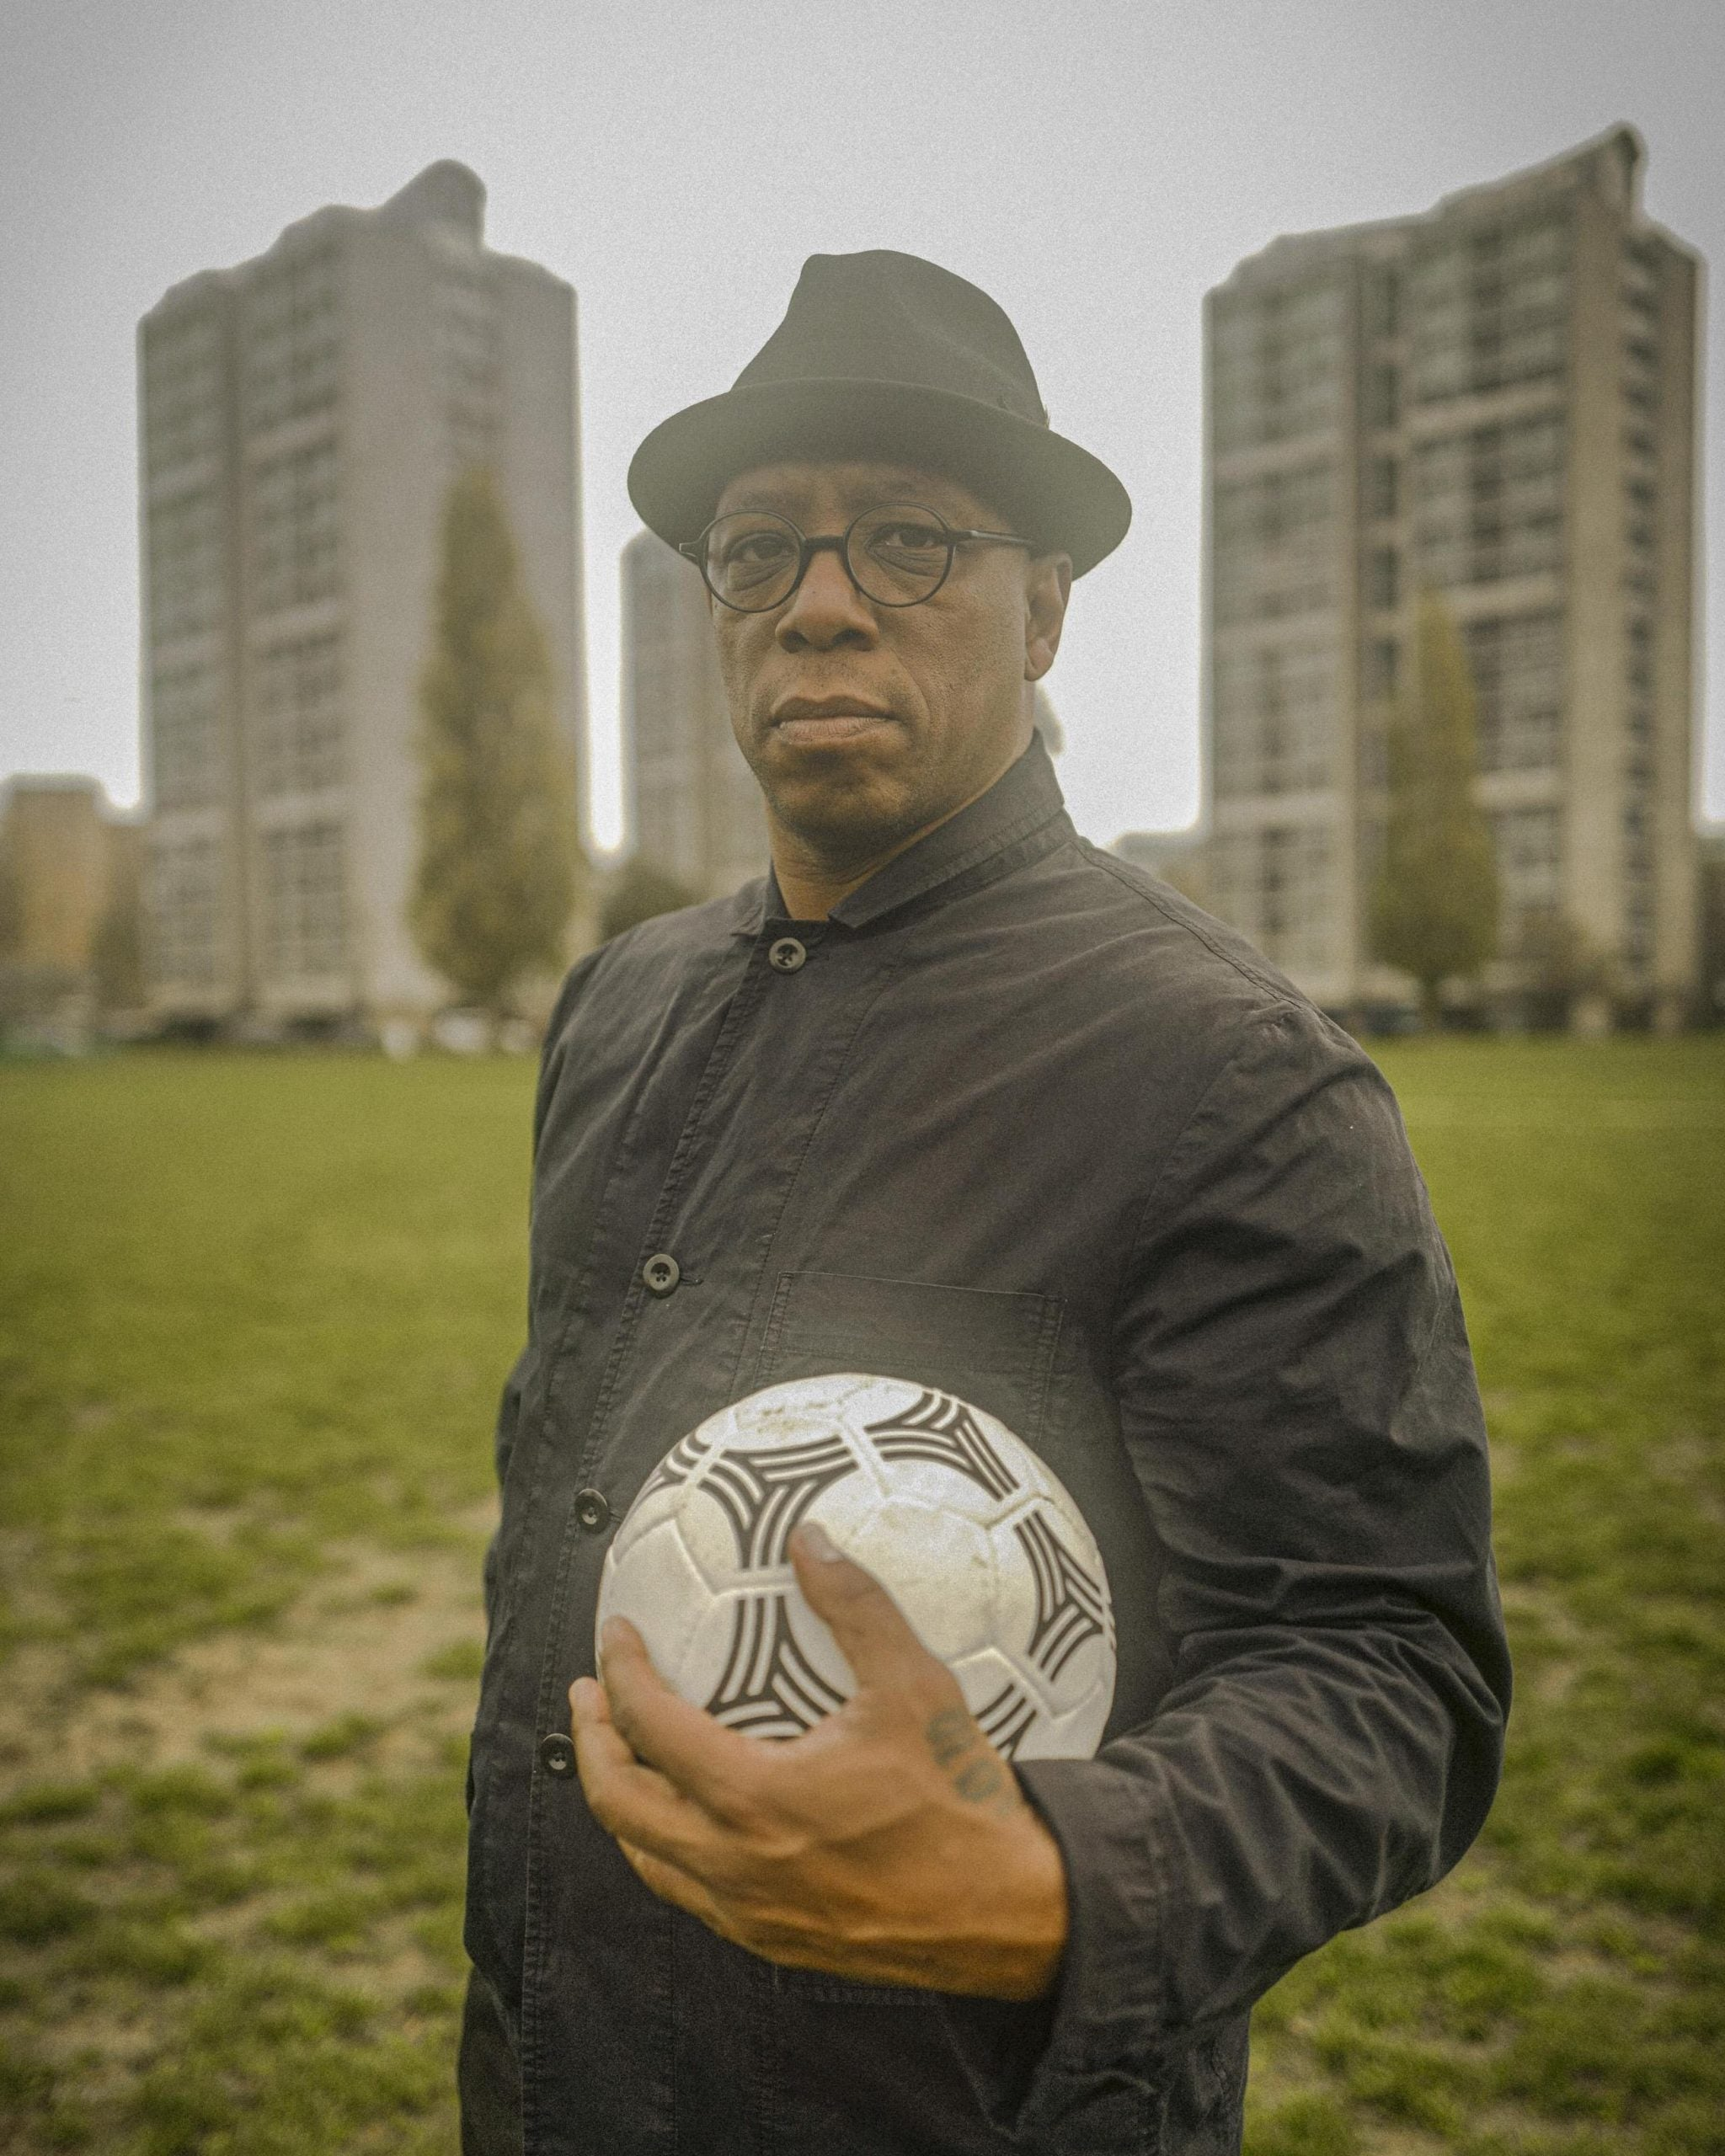 Ian Wright: Home Truths is an urgent film about the damaging, insidious nature of abuse